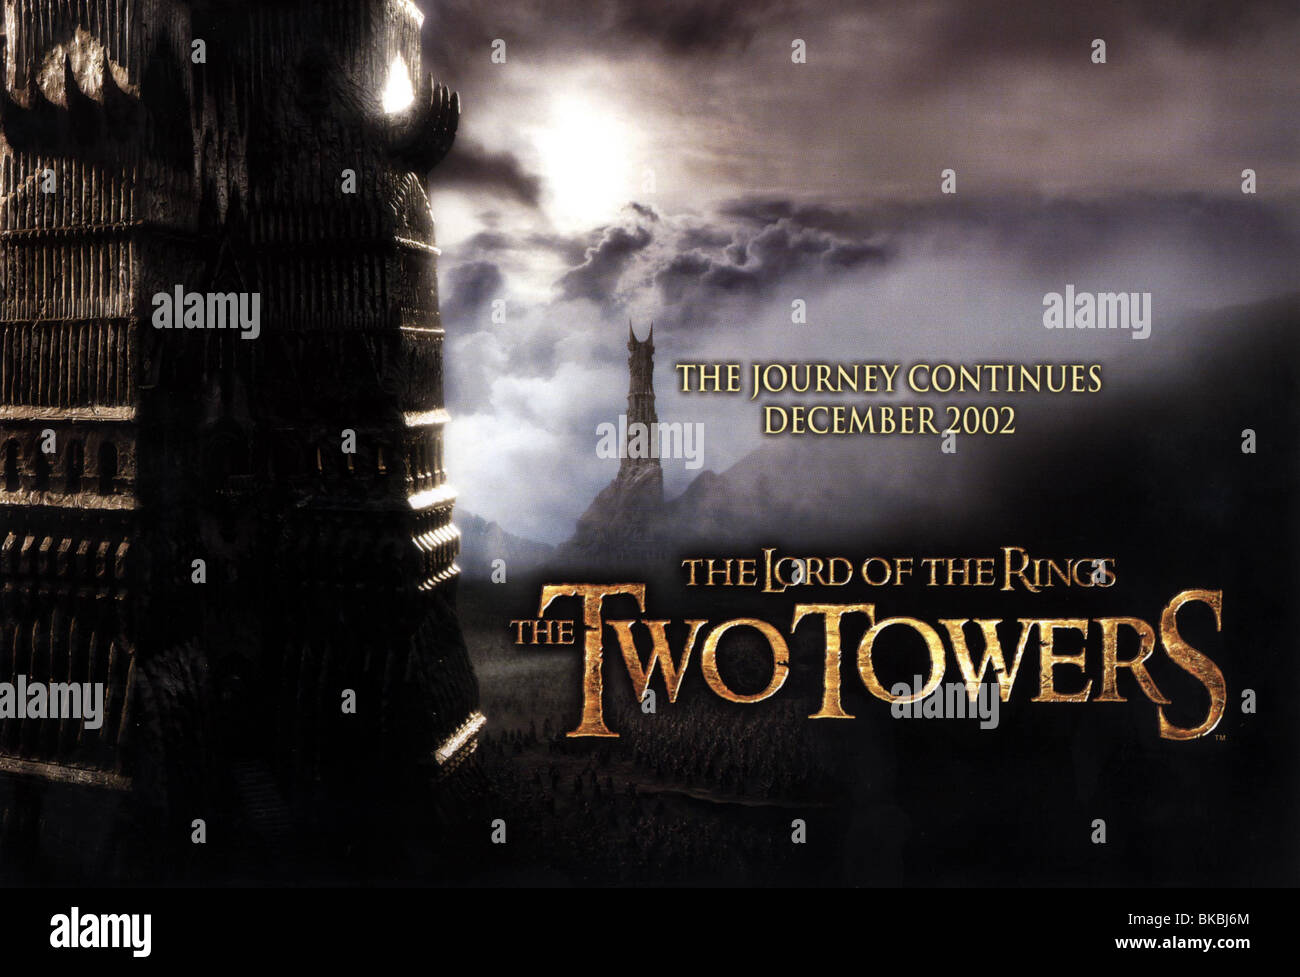 The Lord Of The Rings The Two Towers 2002 Poster Twrs 001cp Stock Photo Alamy